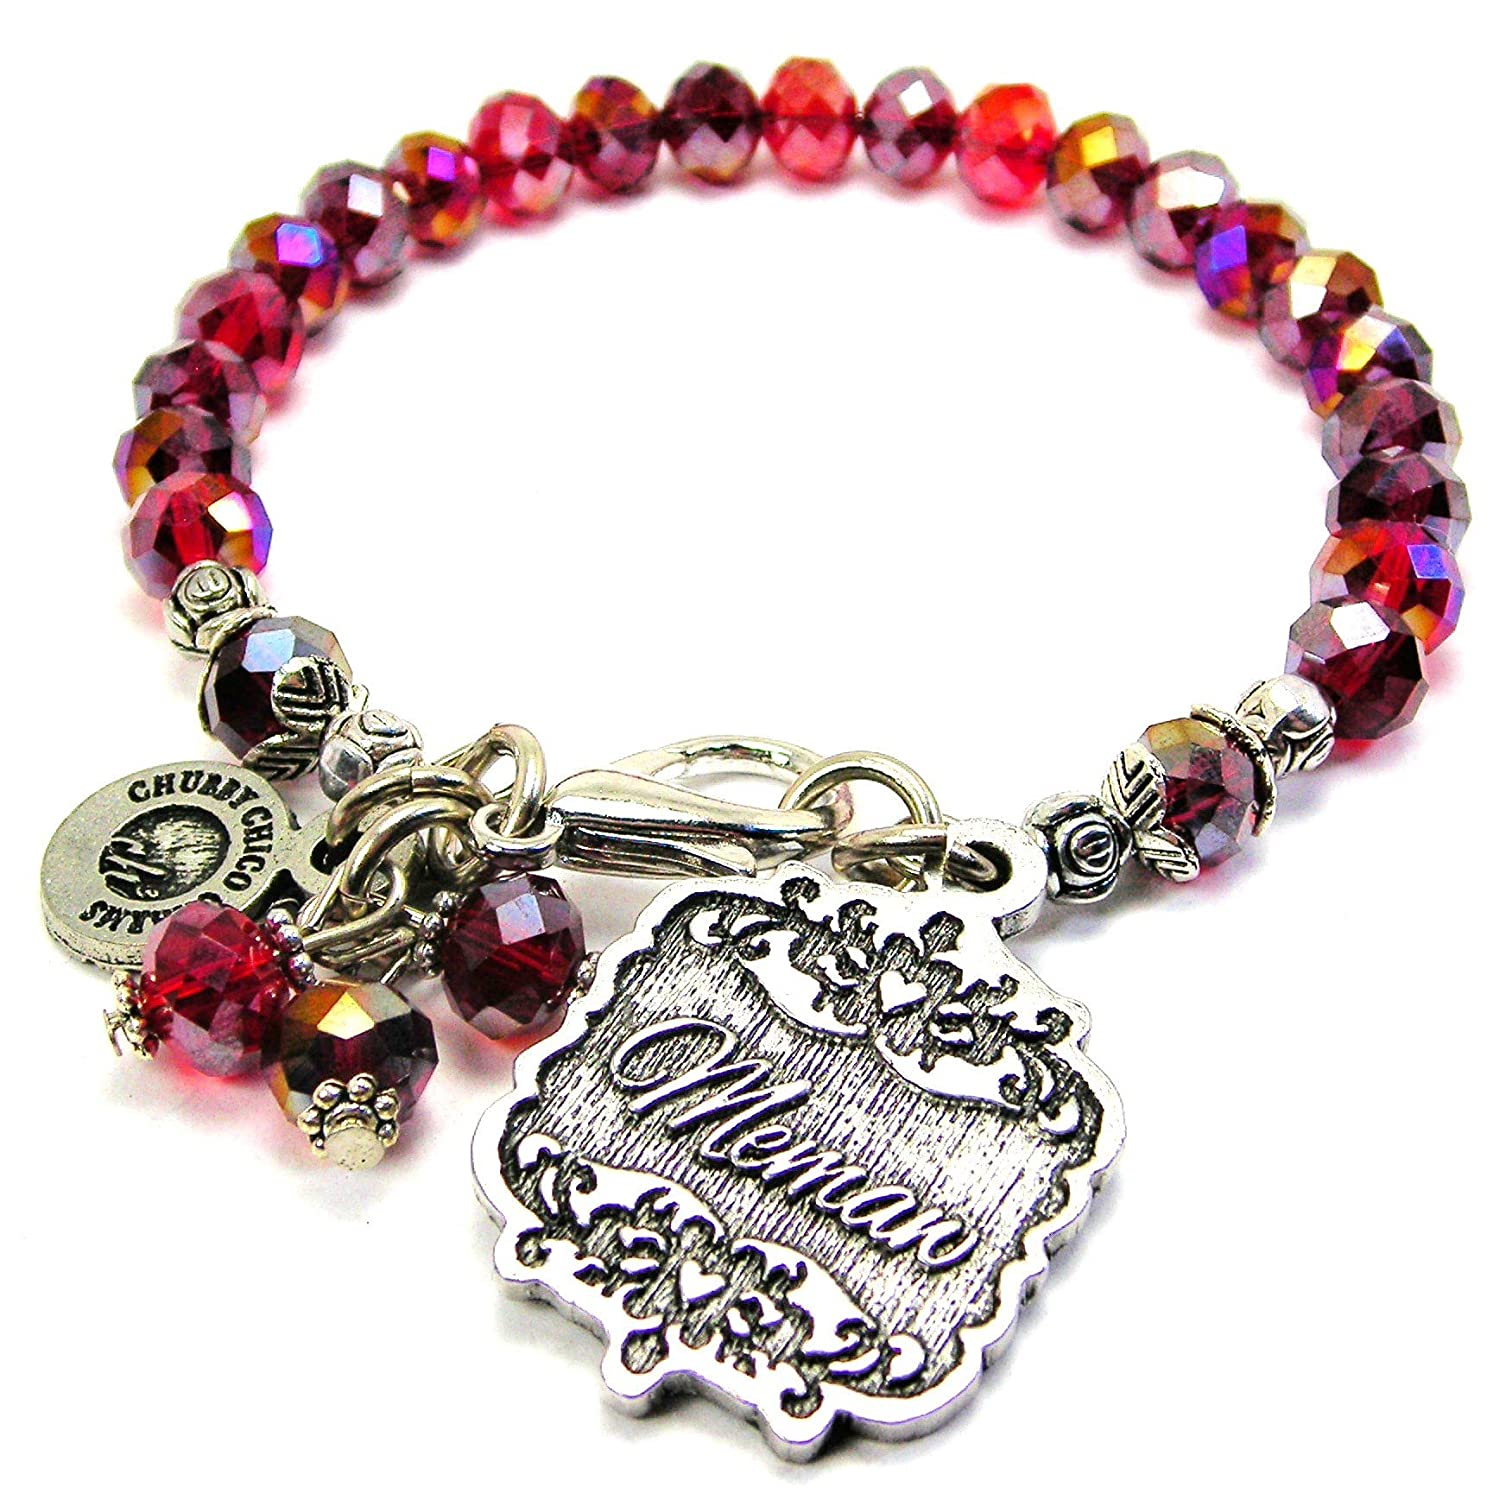 Chubby Chico Charms Memaw Victorian Scroll Splash of Color Bracelet in Crimson Red